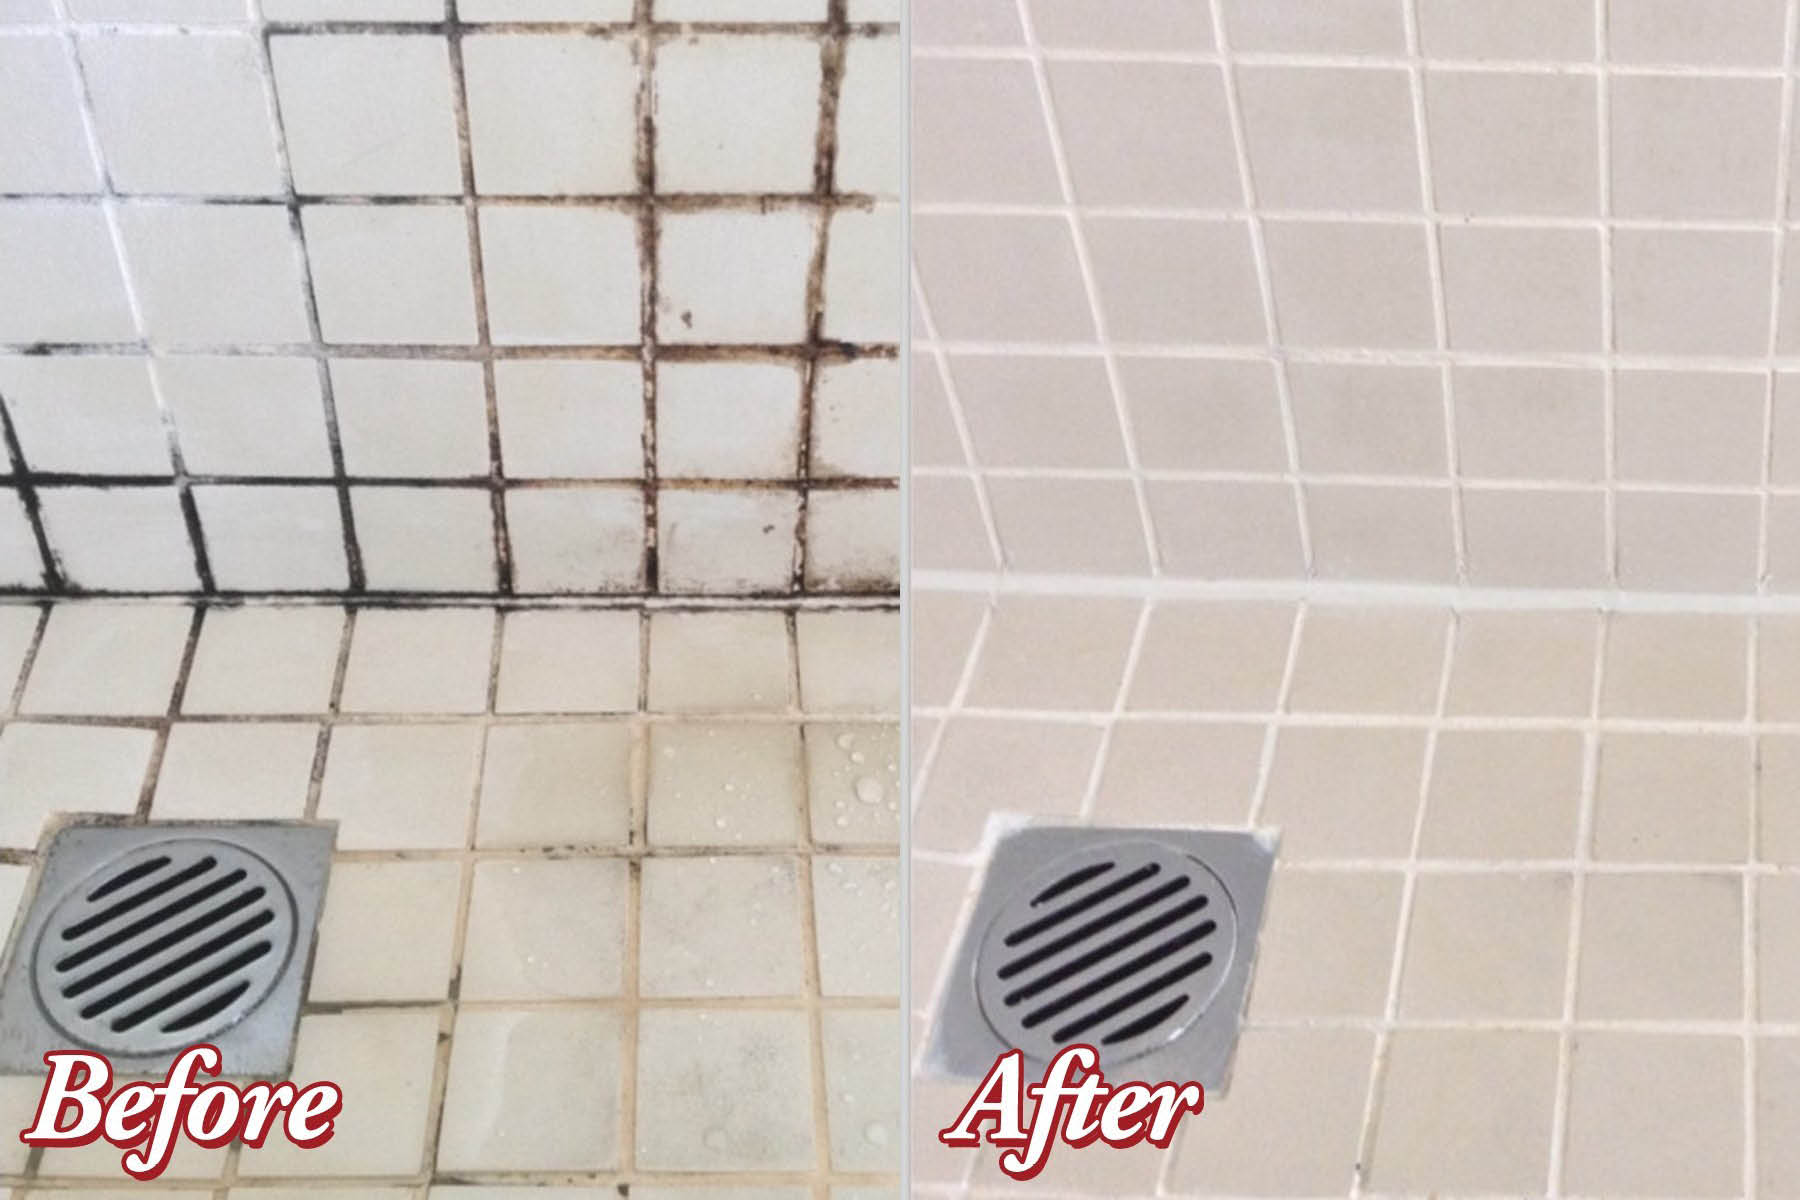 Tile & Grout Cleaning coupon,  Tile & Grout Repair coupon   Caulking & Sealing coupon